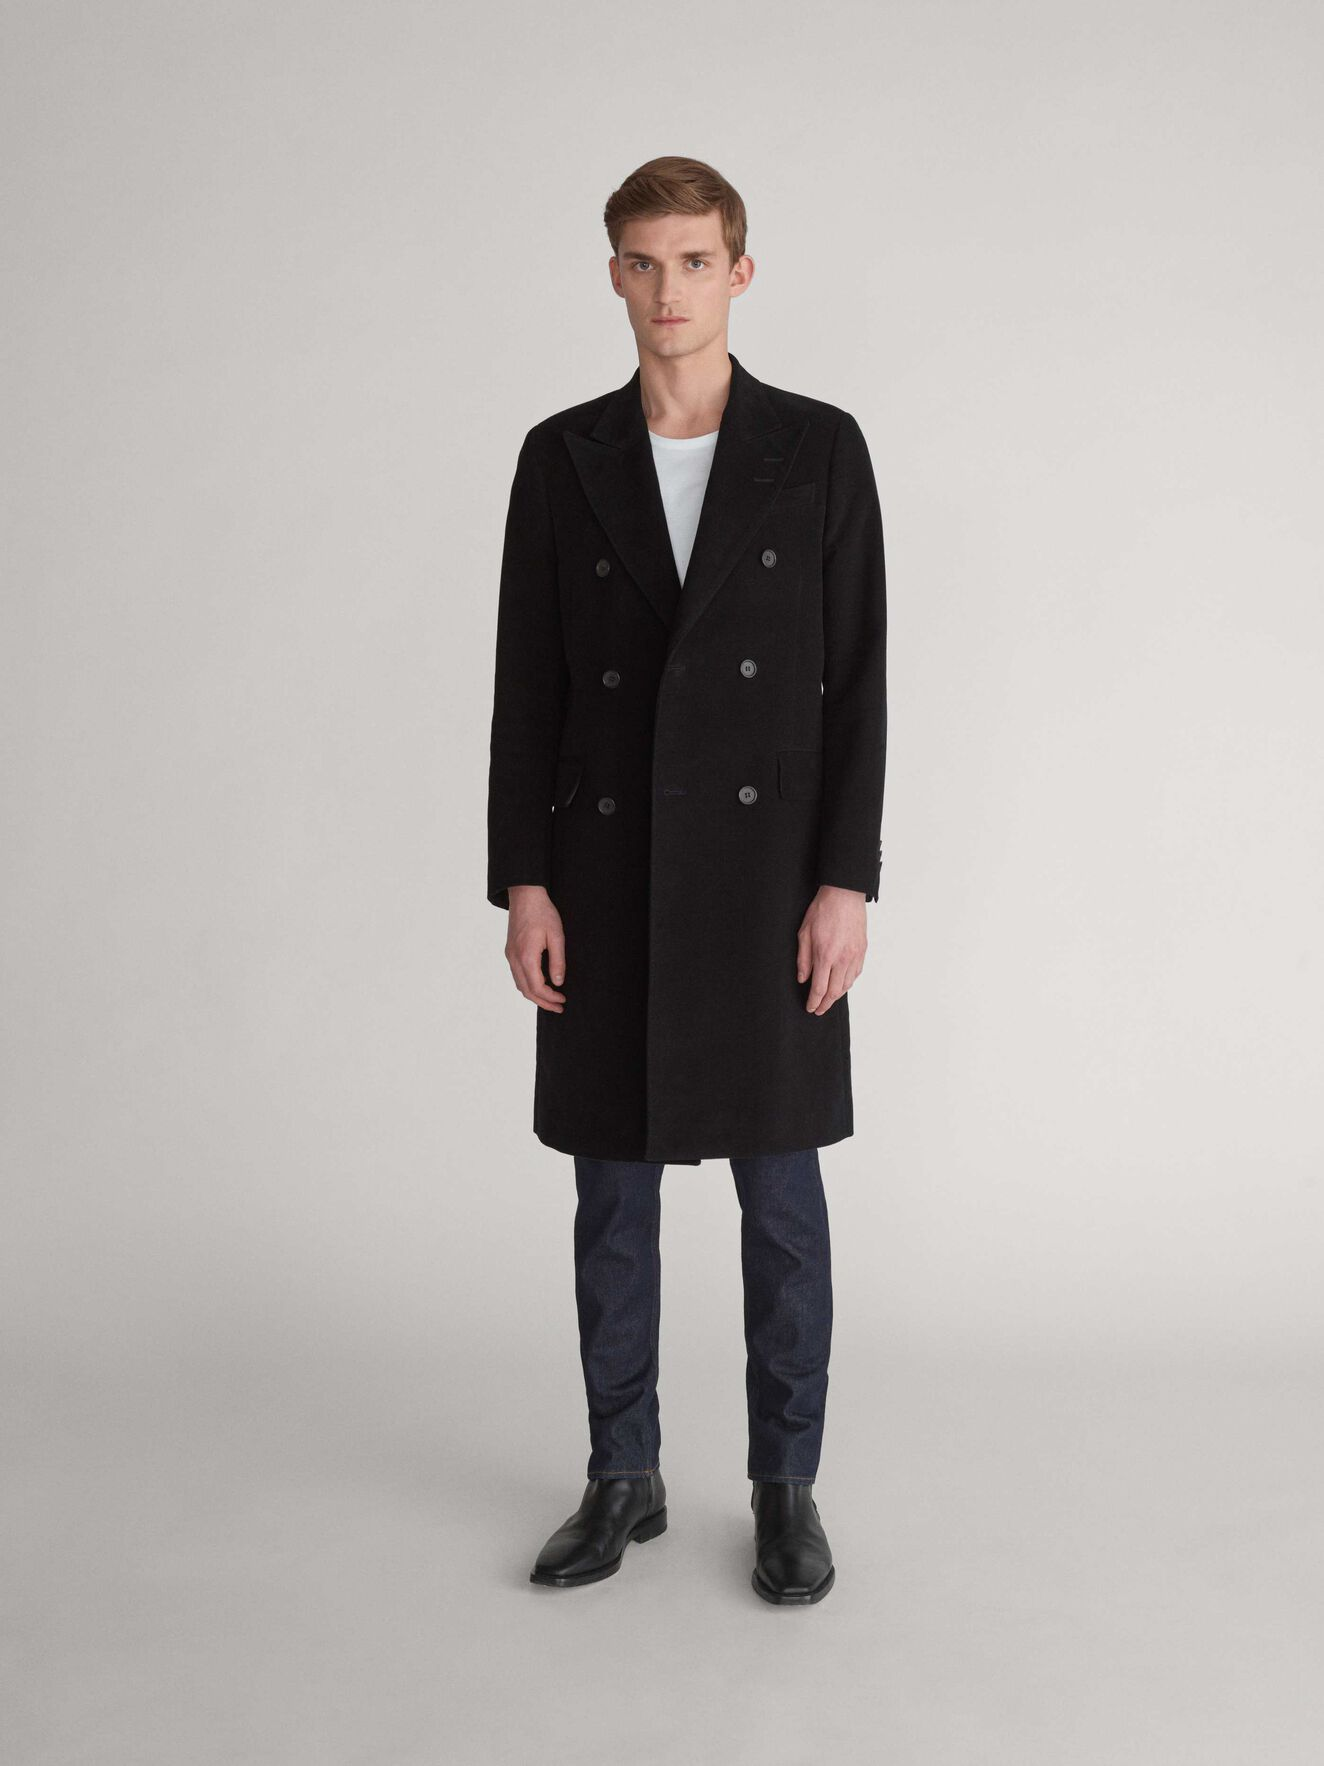 Manteau Coltron in Black from Tiger of Sweden